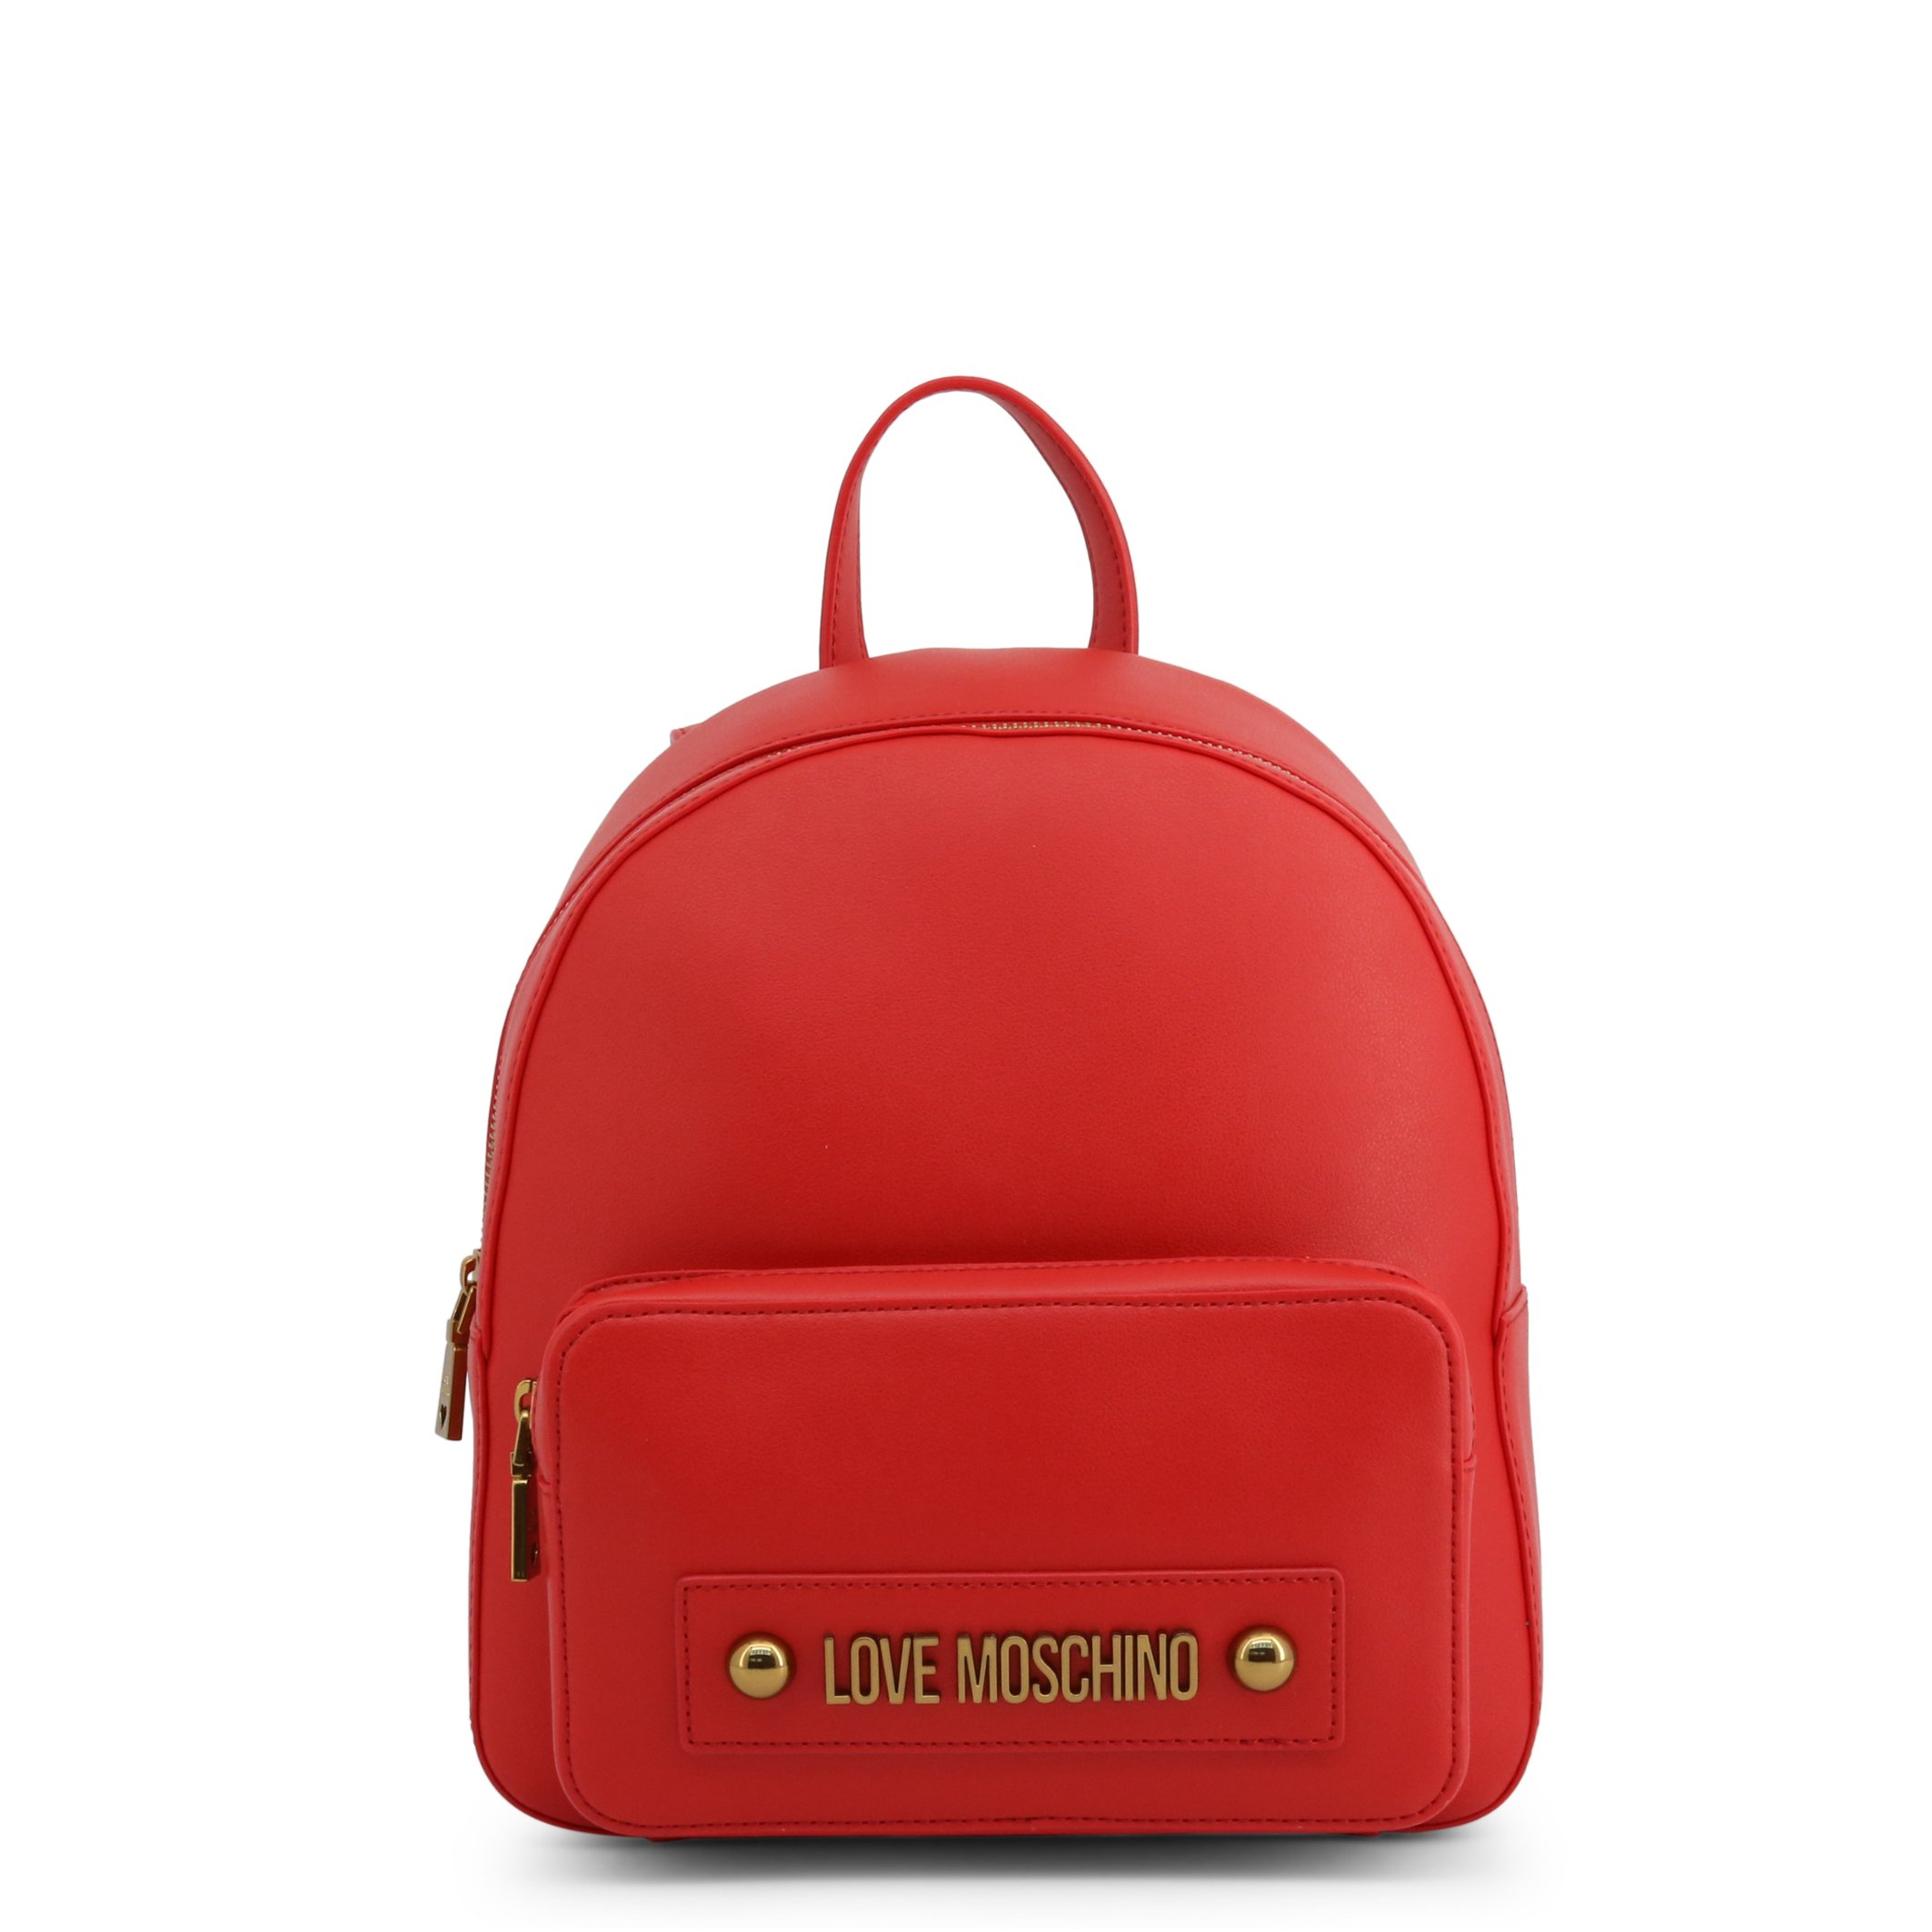 Love Moschino Women's Backpack Various Colours JC4028PP1ALD - red NOSIZE